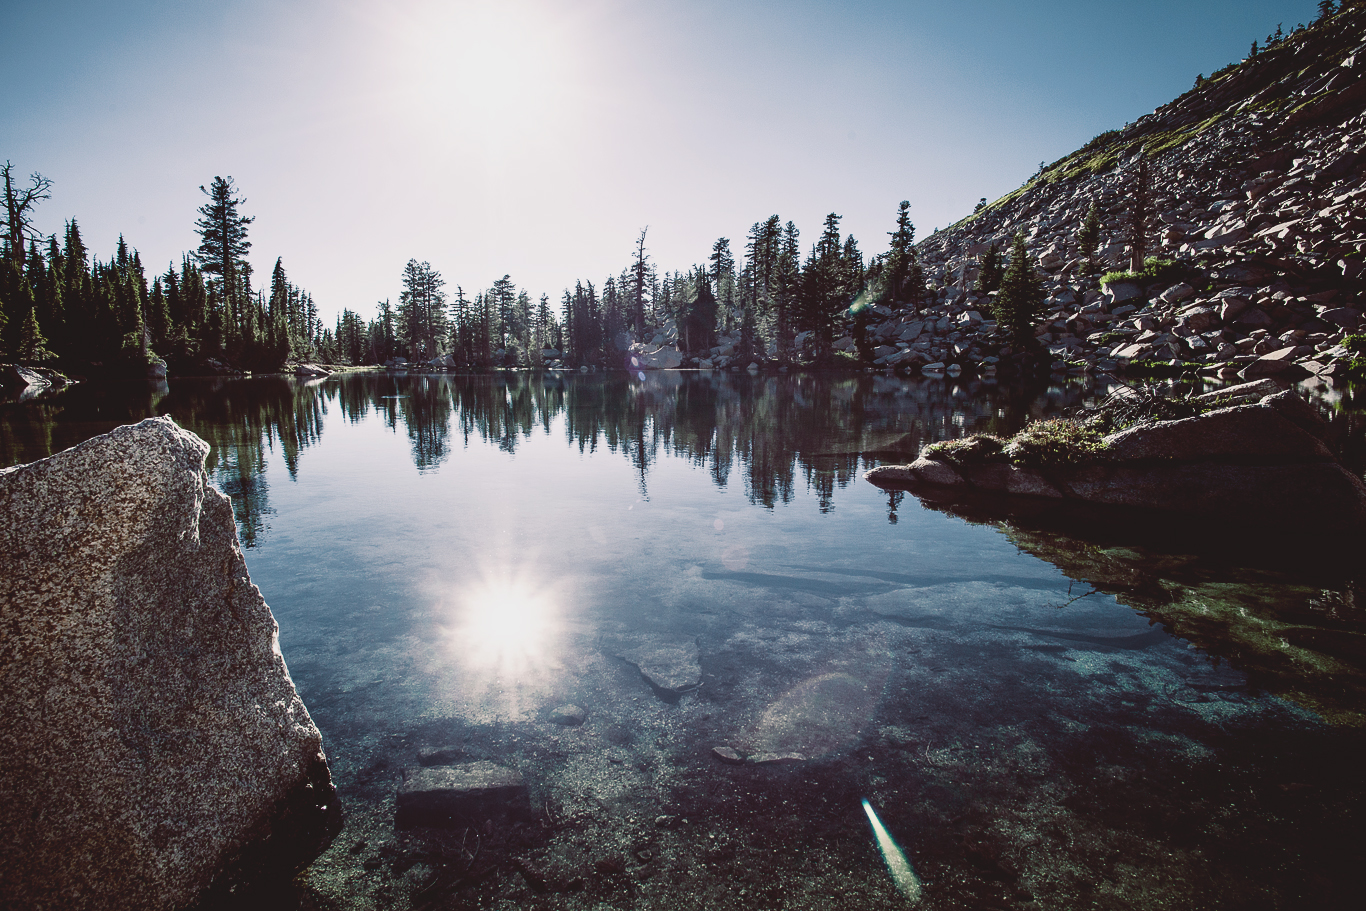 Hemlock Lake, Desolation Wilderness, CA